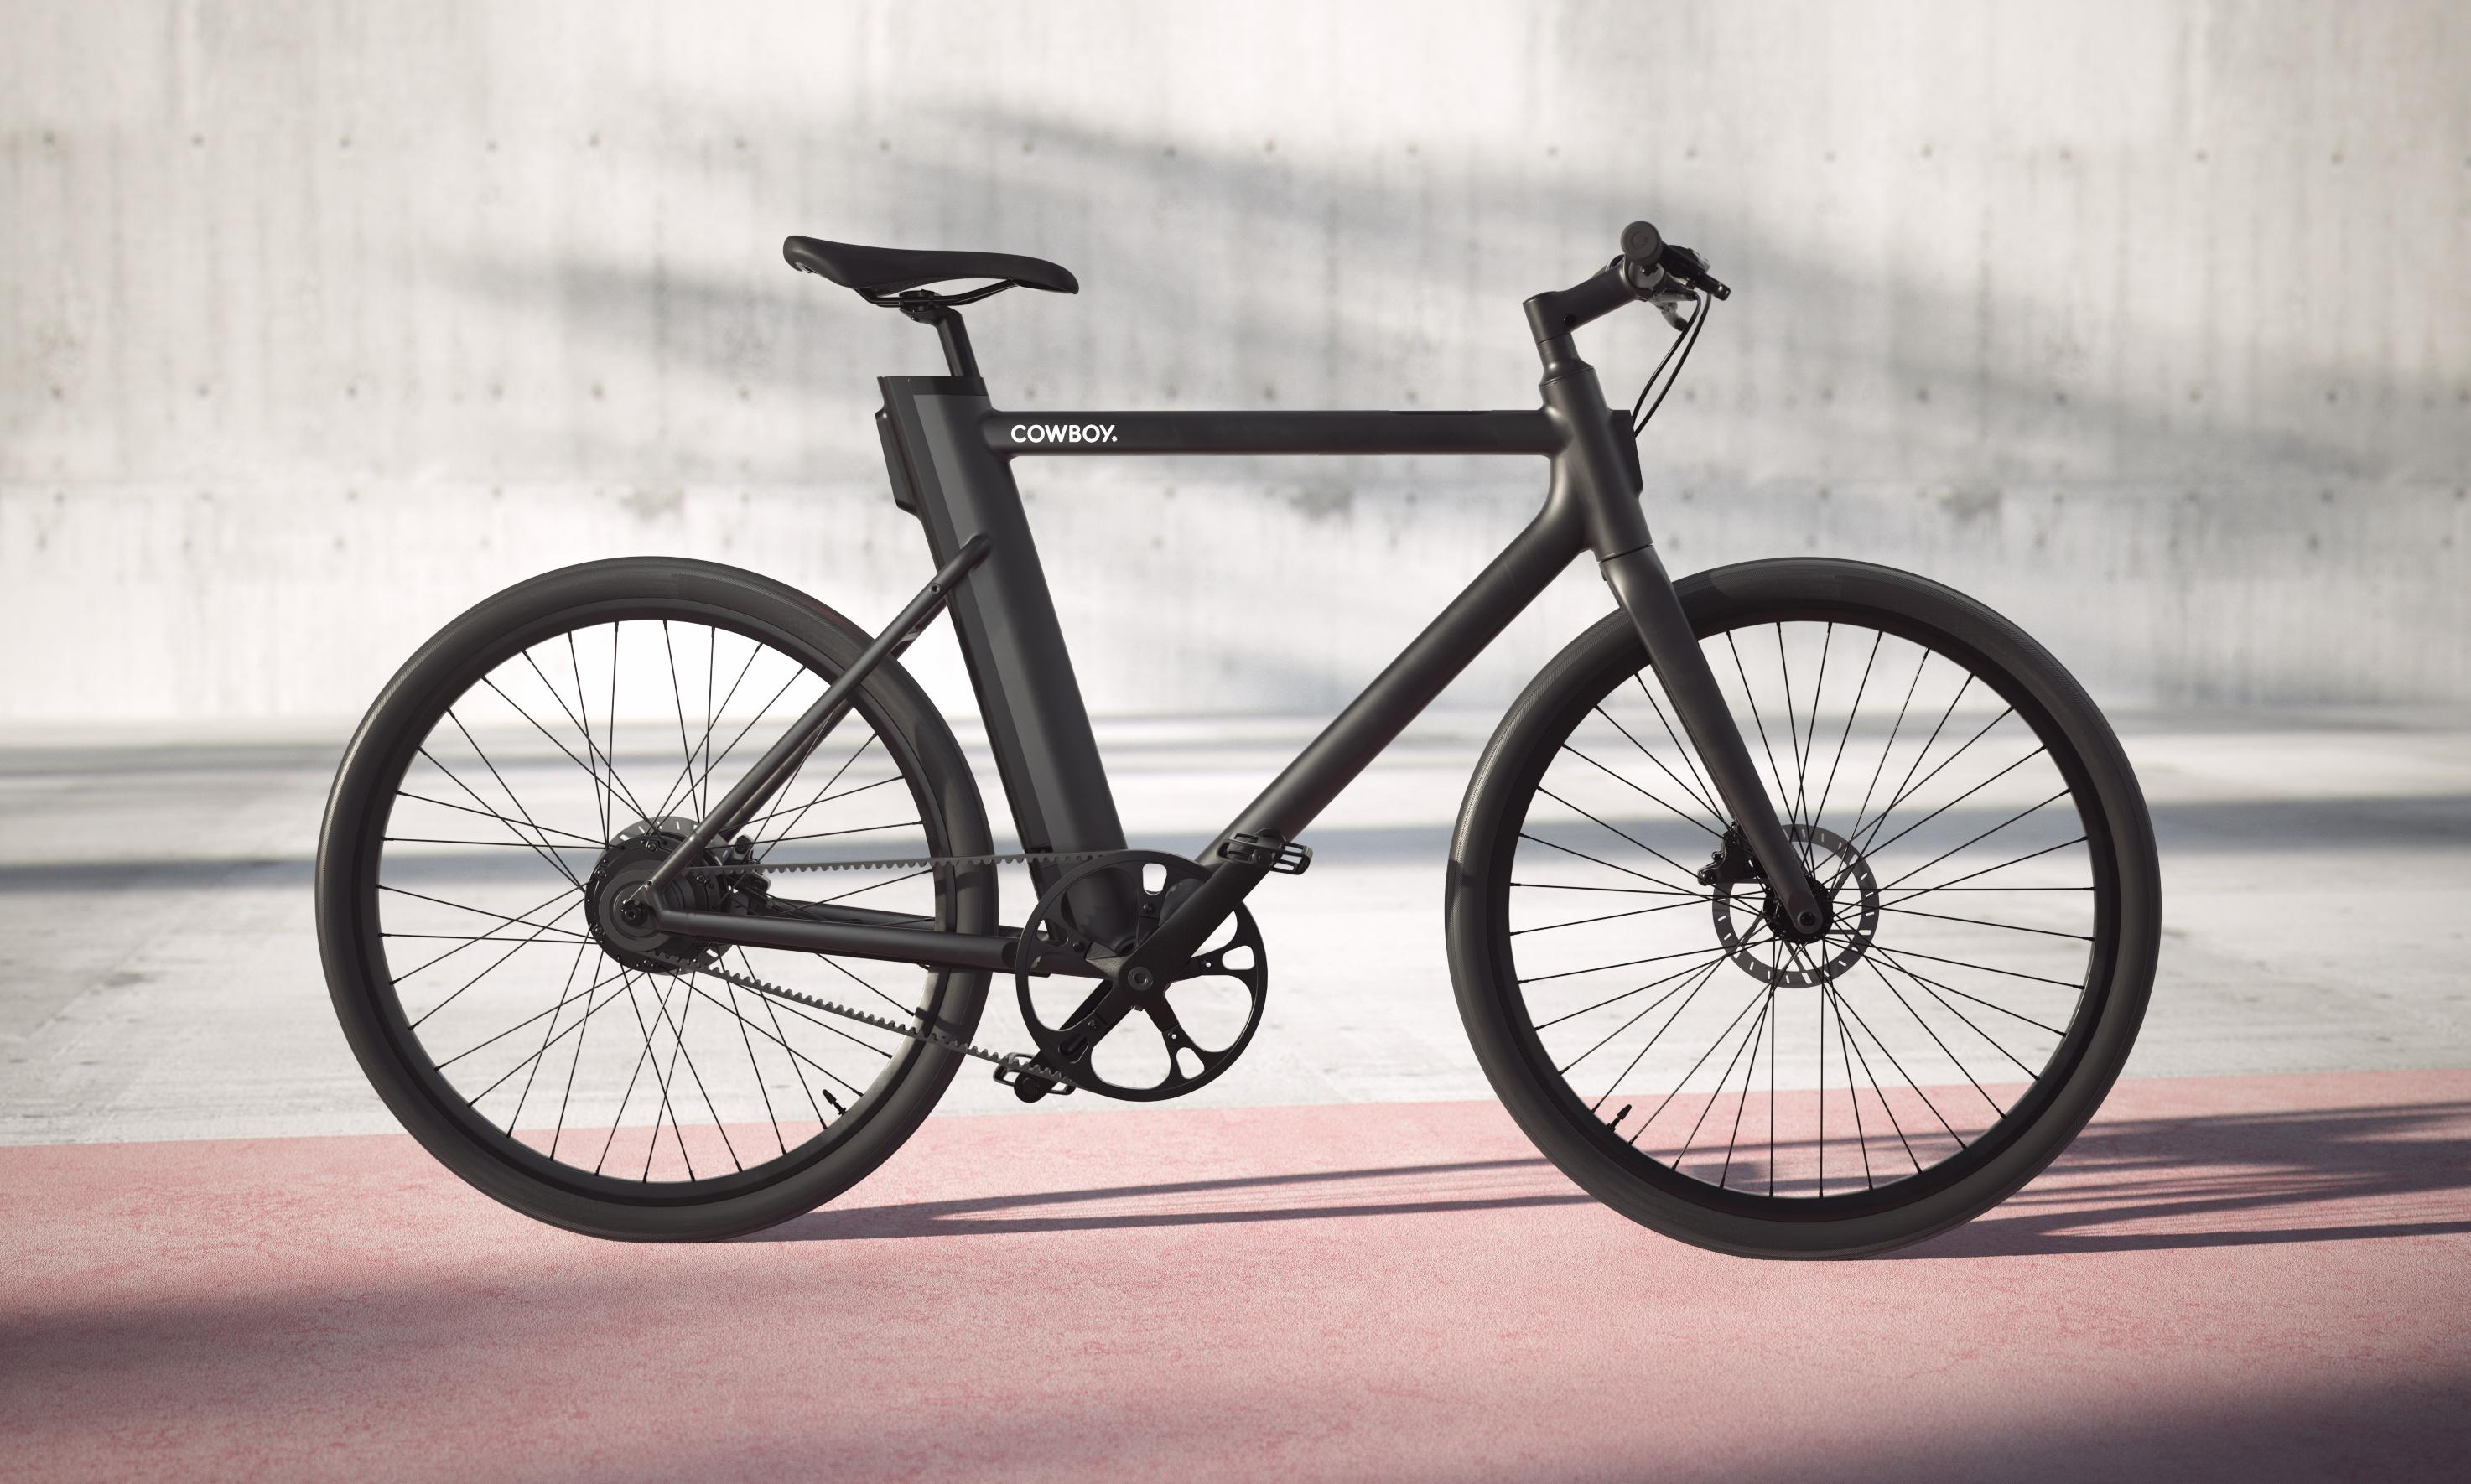 Cowboy ebike: 'Smooth and innovative. It will soon win its spurs'